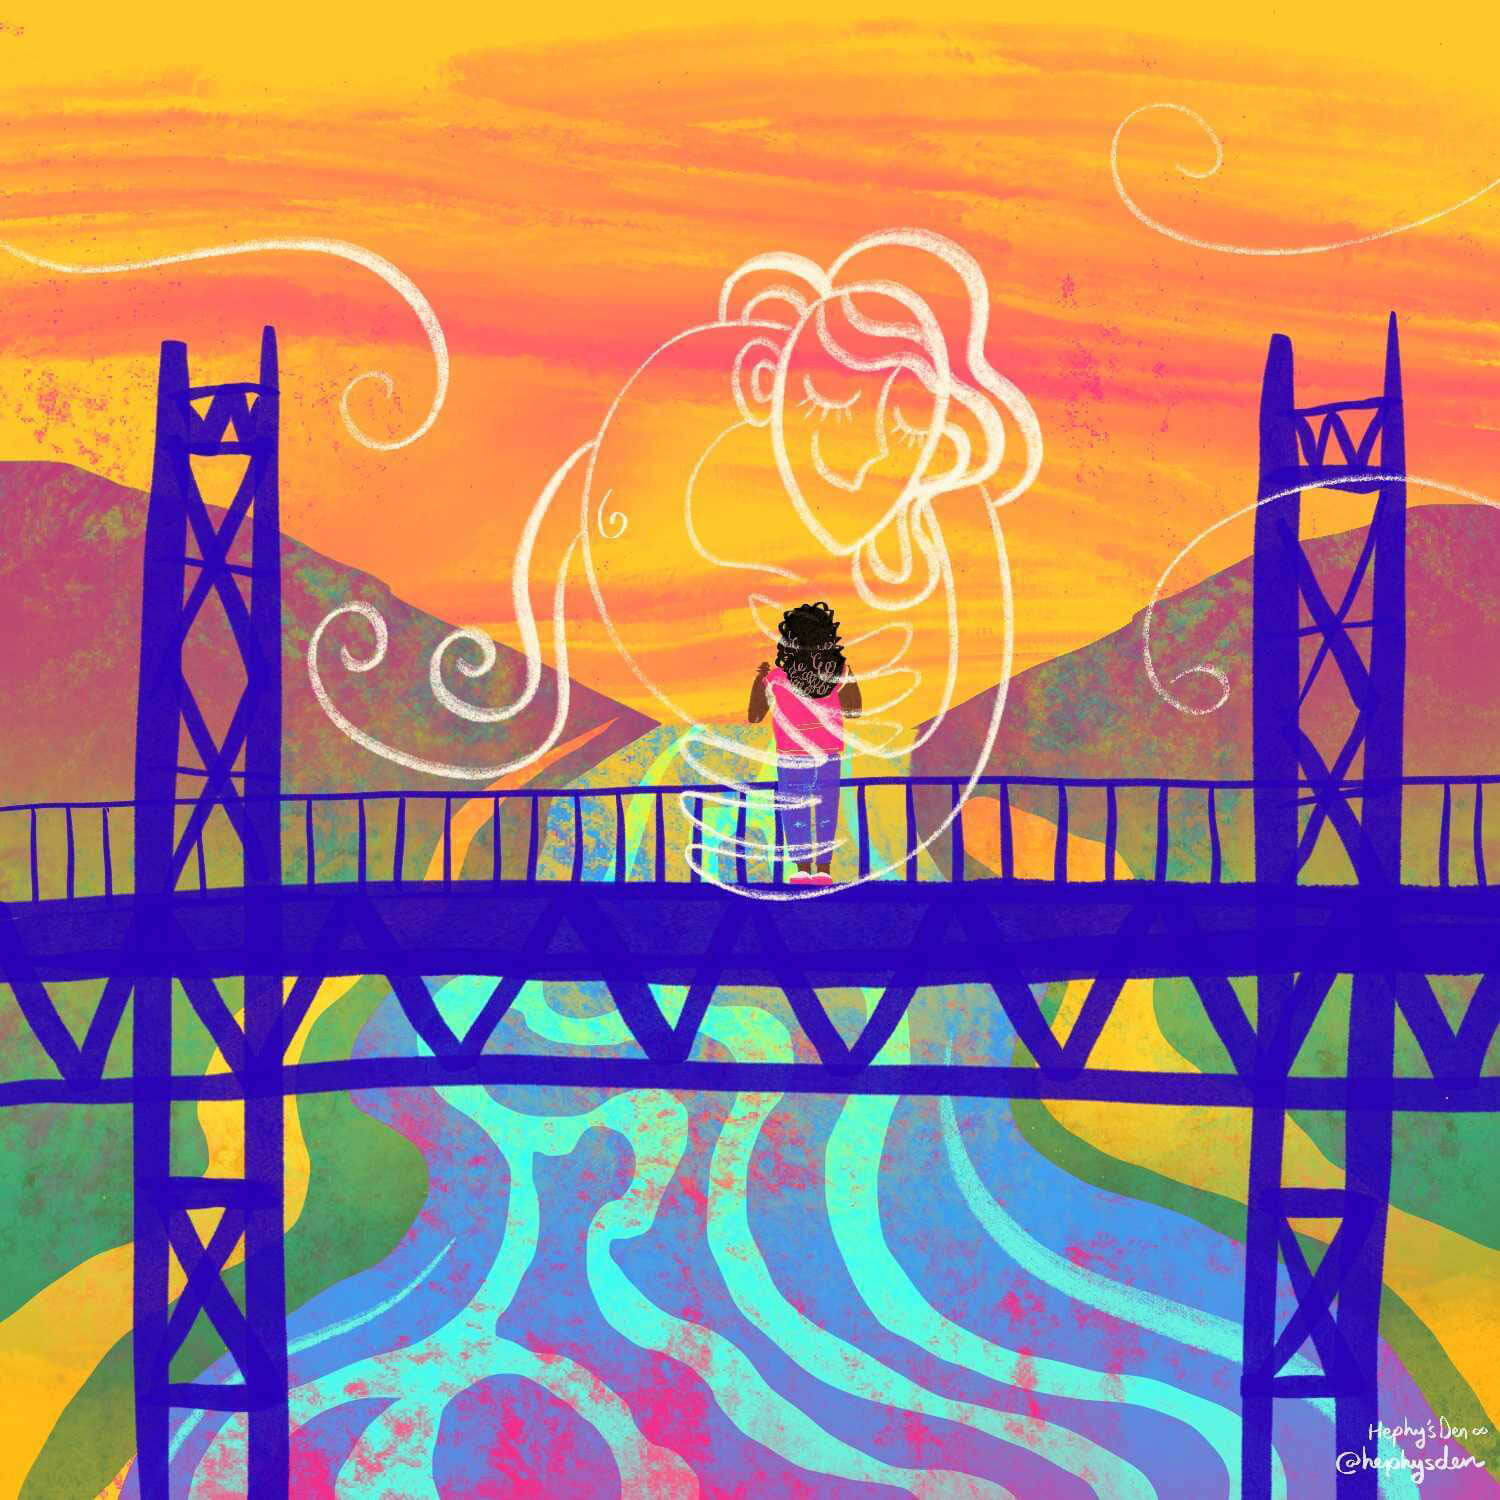 An illustration of a Black woman on a bridge, hugging the outline of another person.